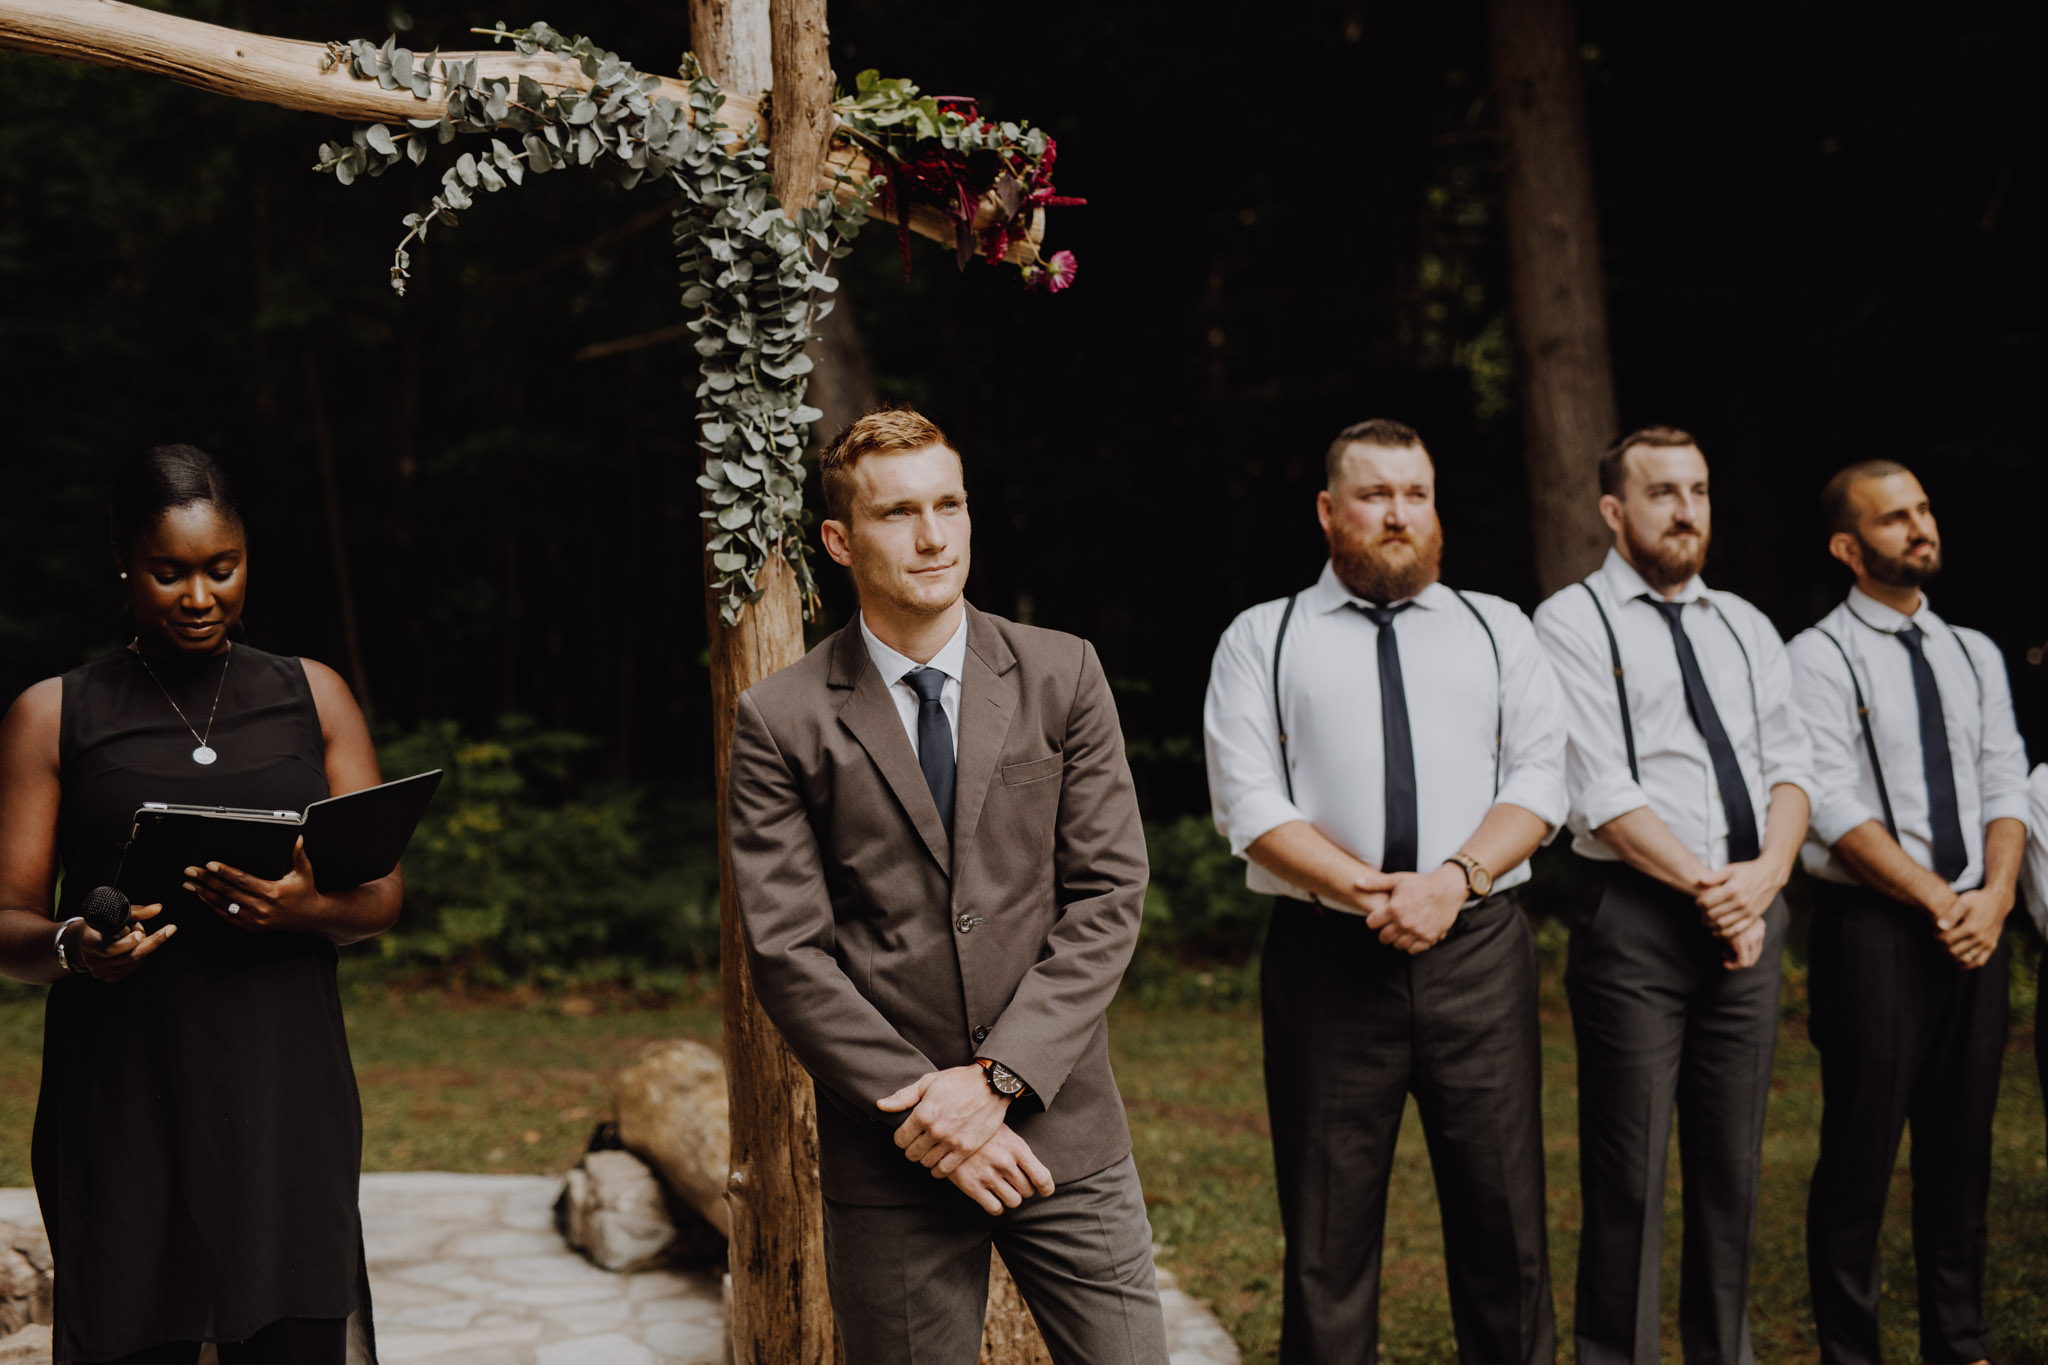 Outdoor Camp Wedding - groom at the alter